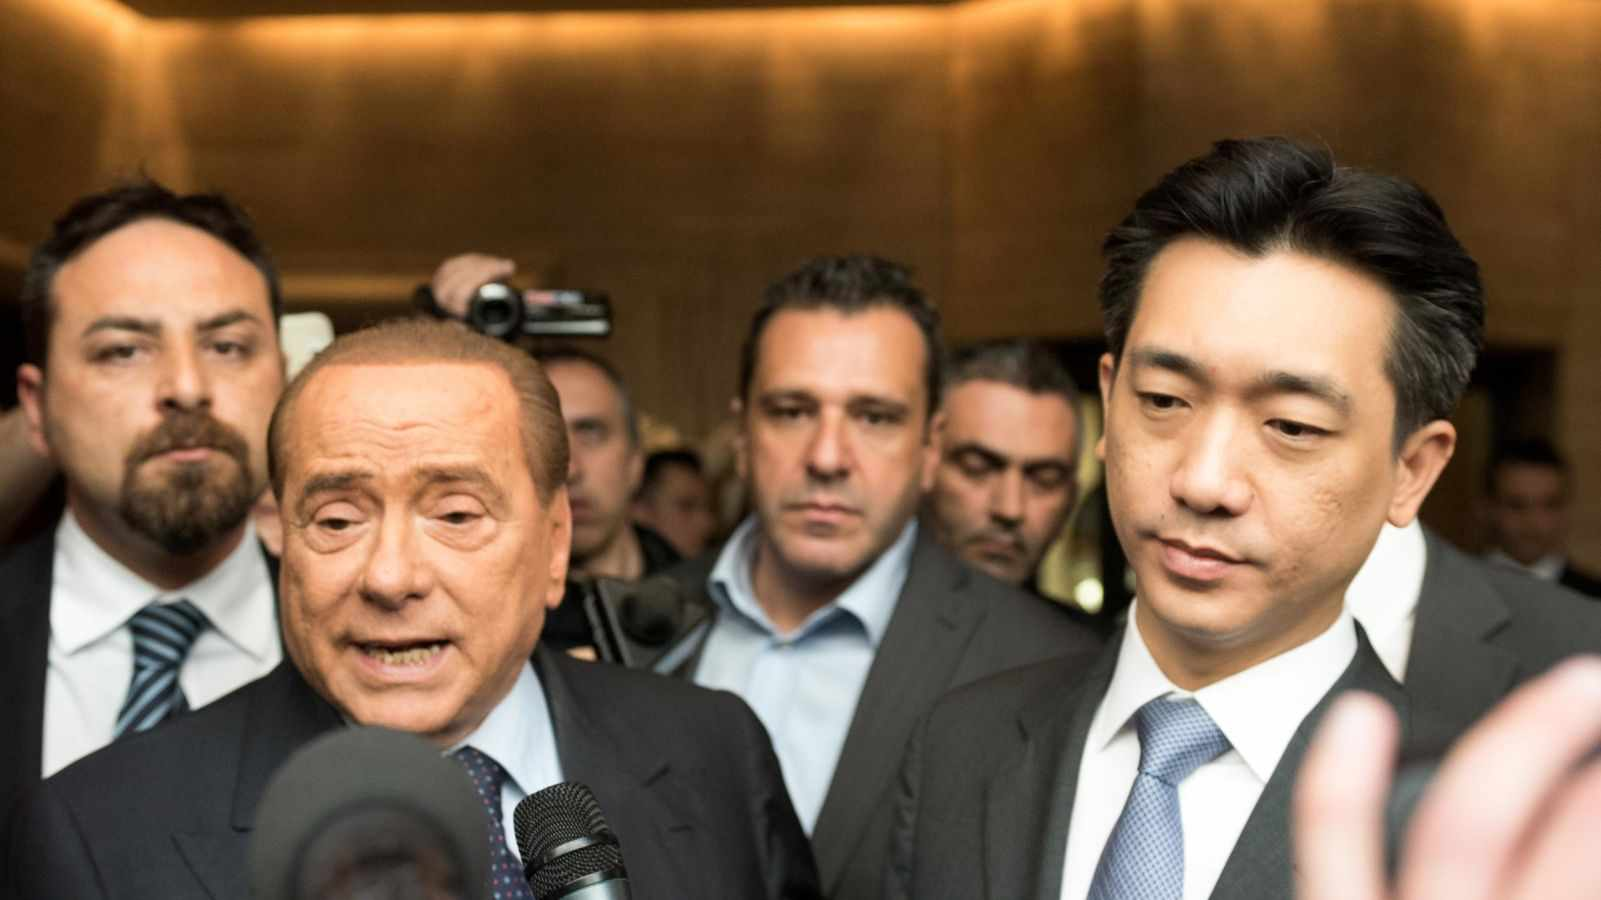 berlusconi bee cessione quota minoranza